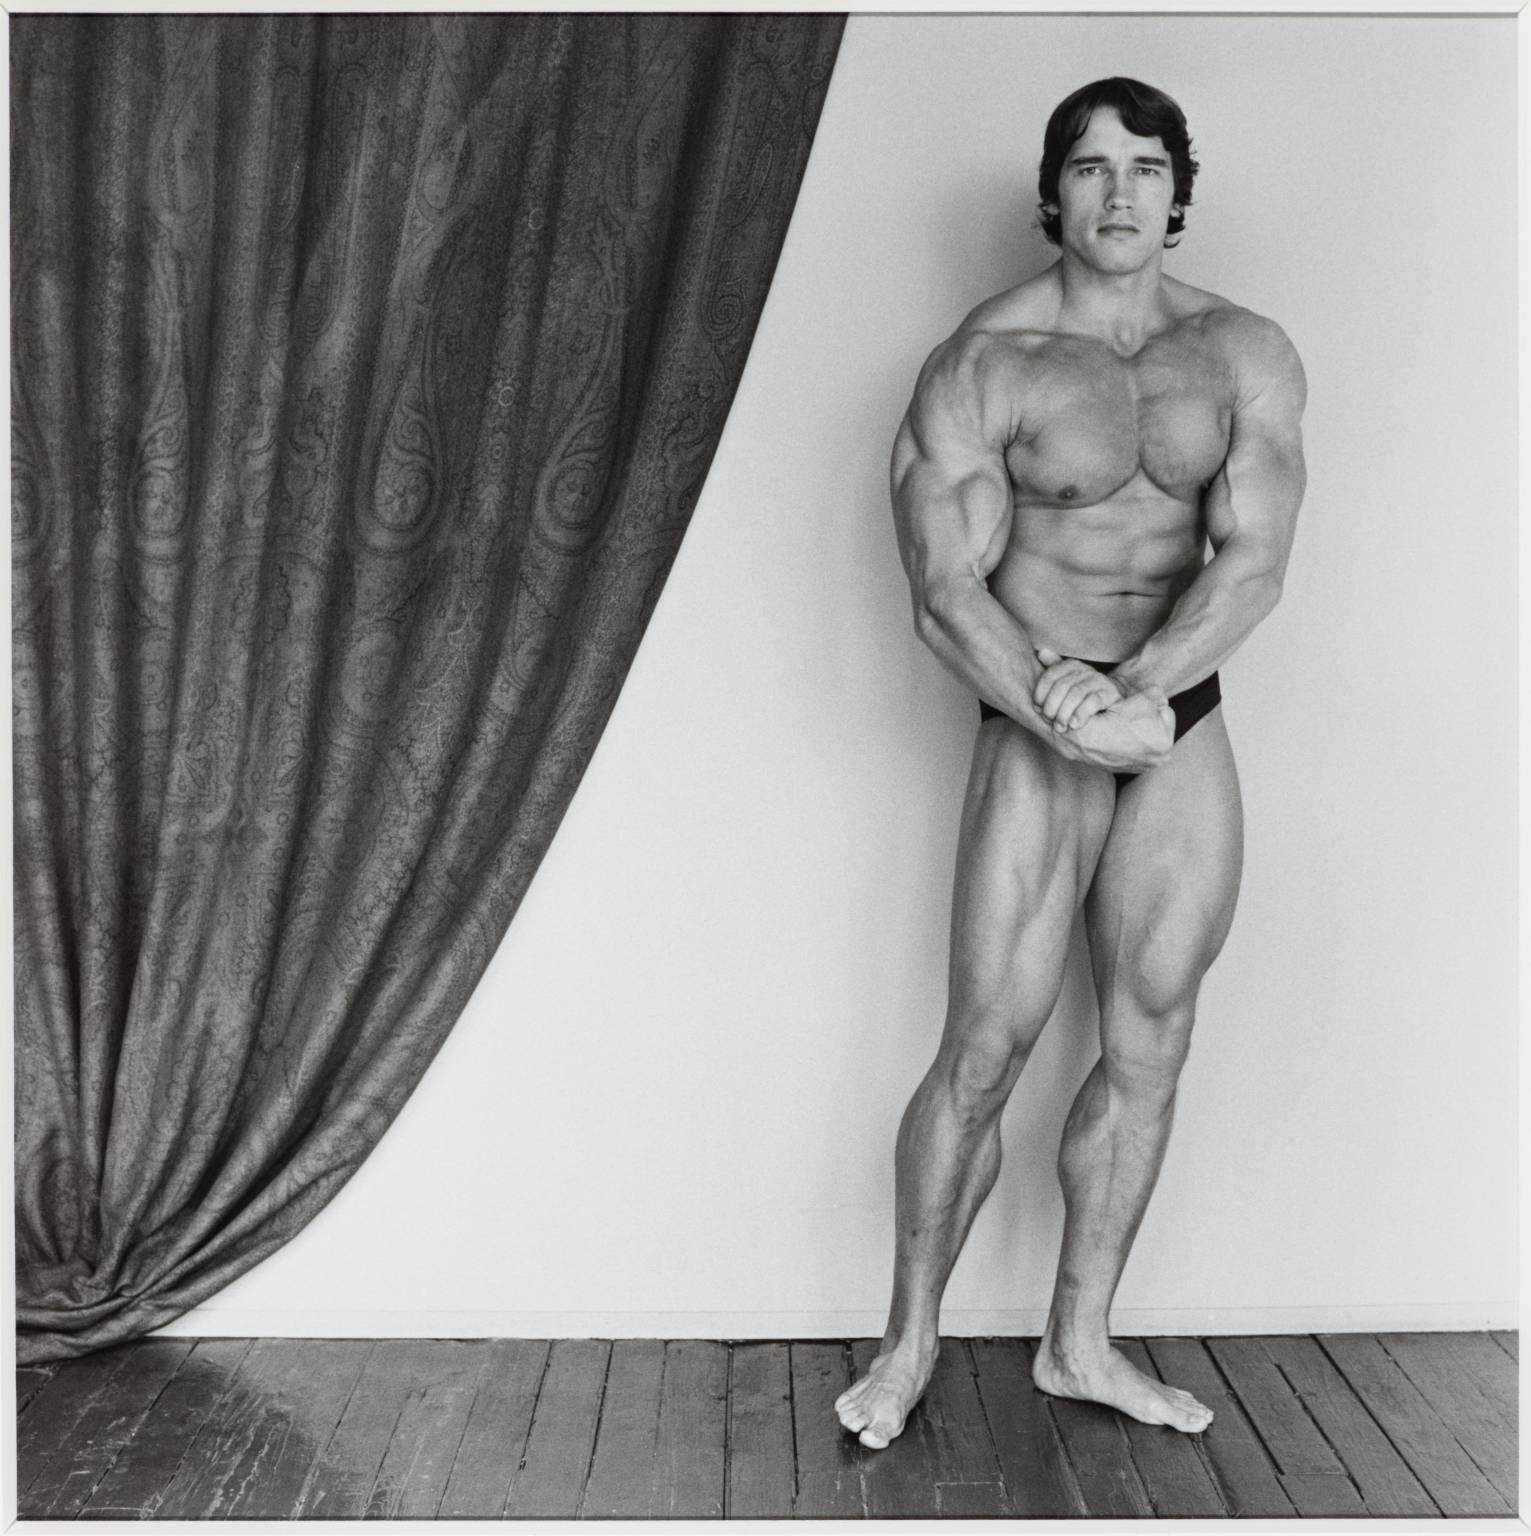 Arnold Schwarzenegger 1976, printed 2005 by Robert Mapplethorpe 1946-1989